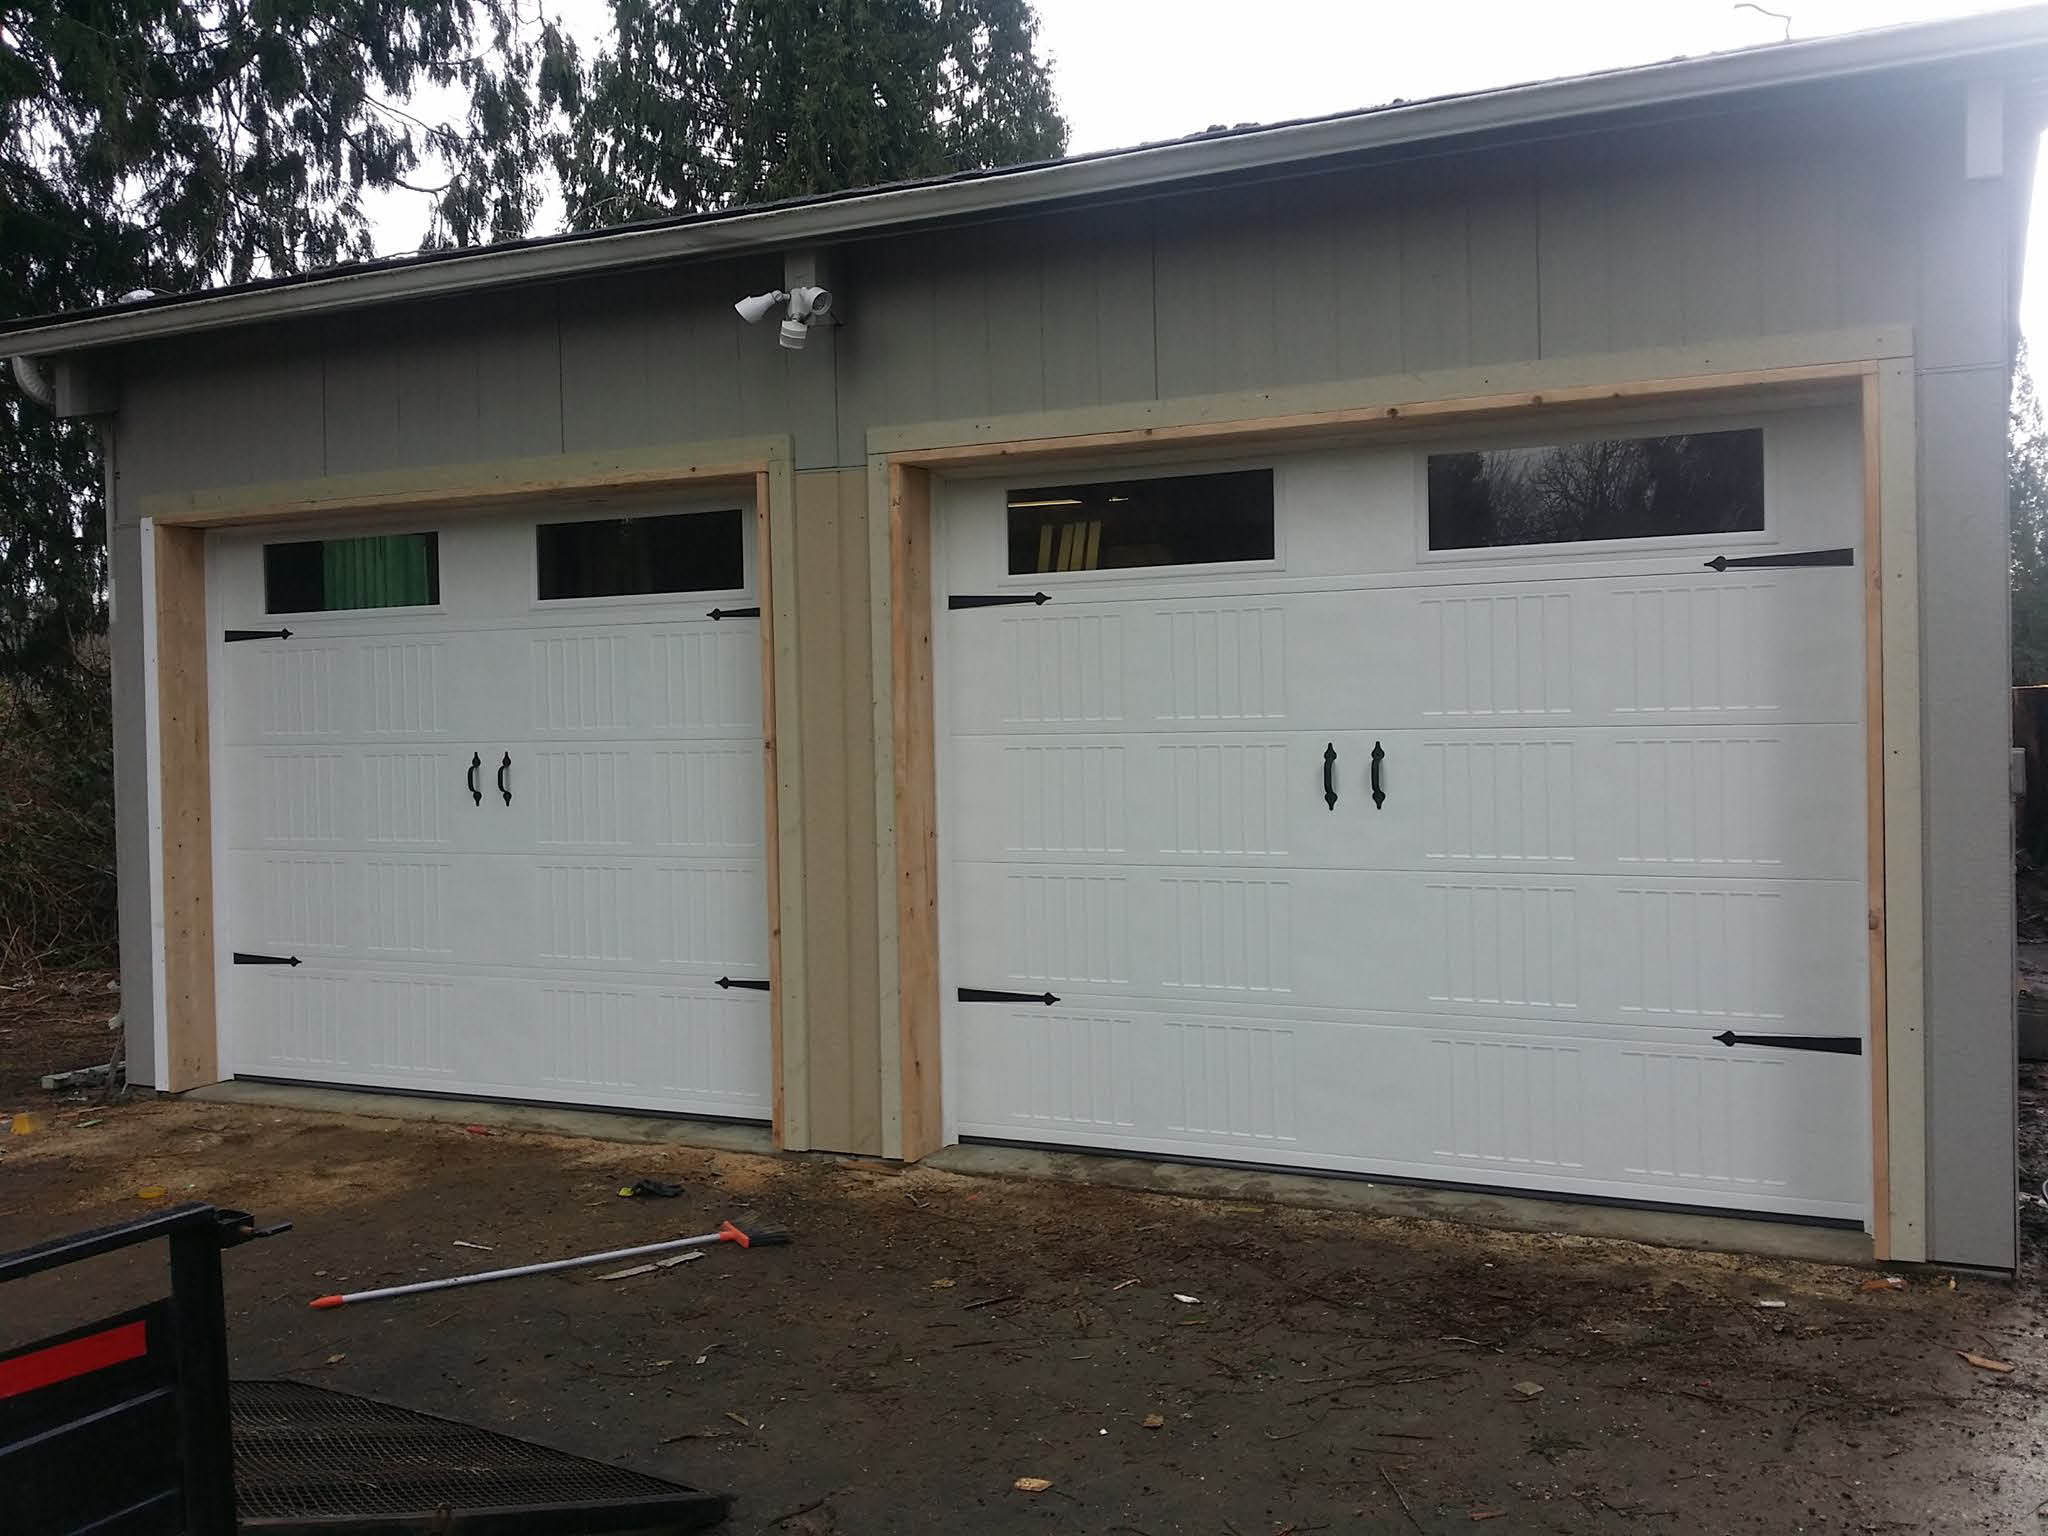 Independent garage doors llc local coupons march 15 2018 garage door repair and garage door installation from independent garage doors in tacoma wa rubansaba